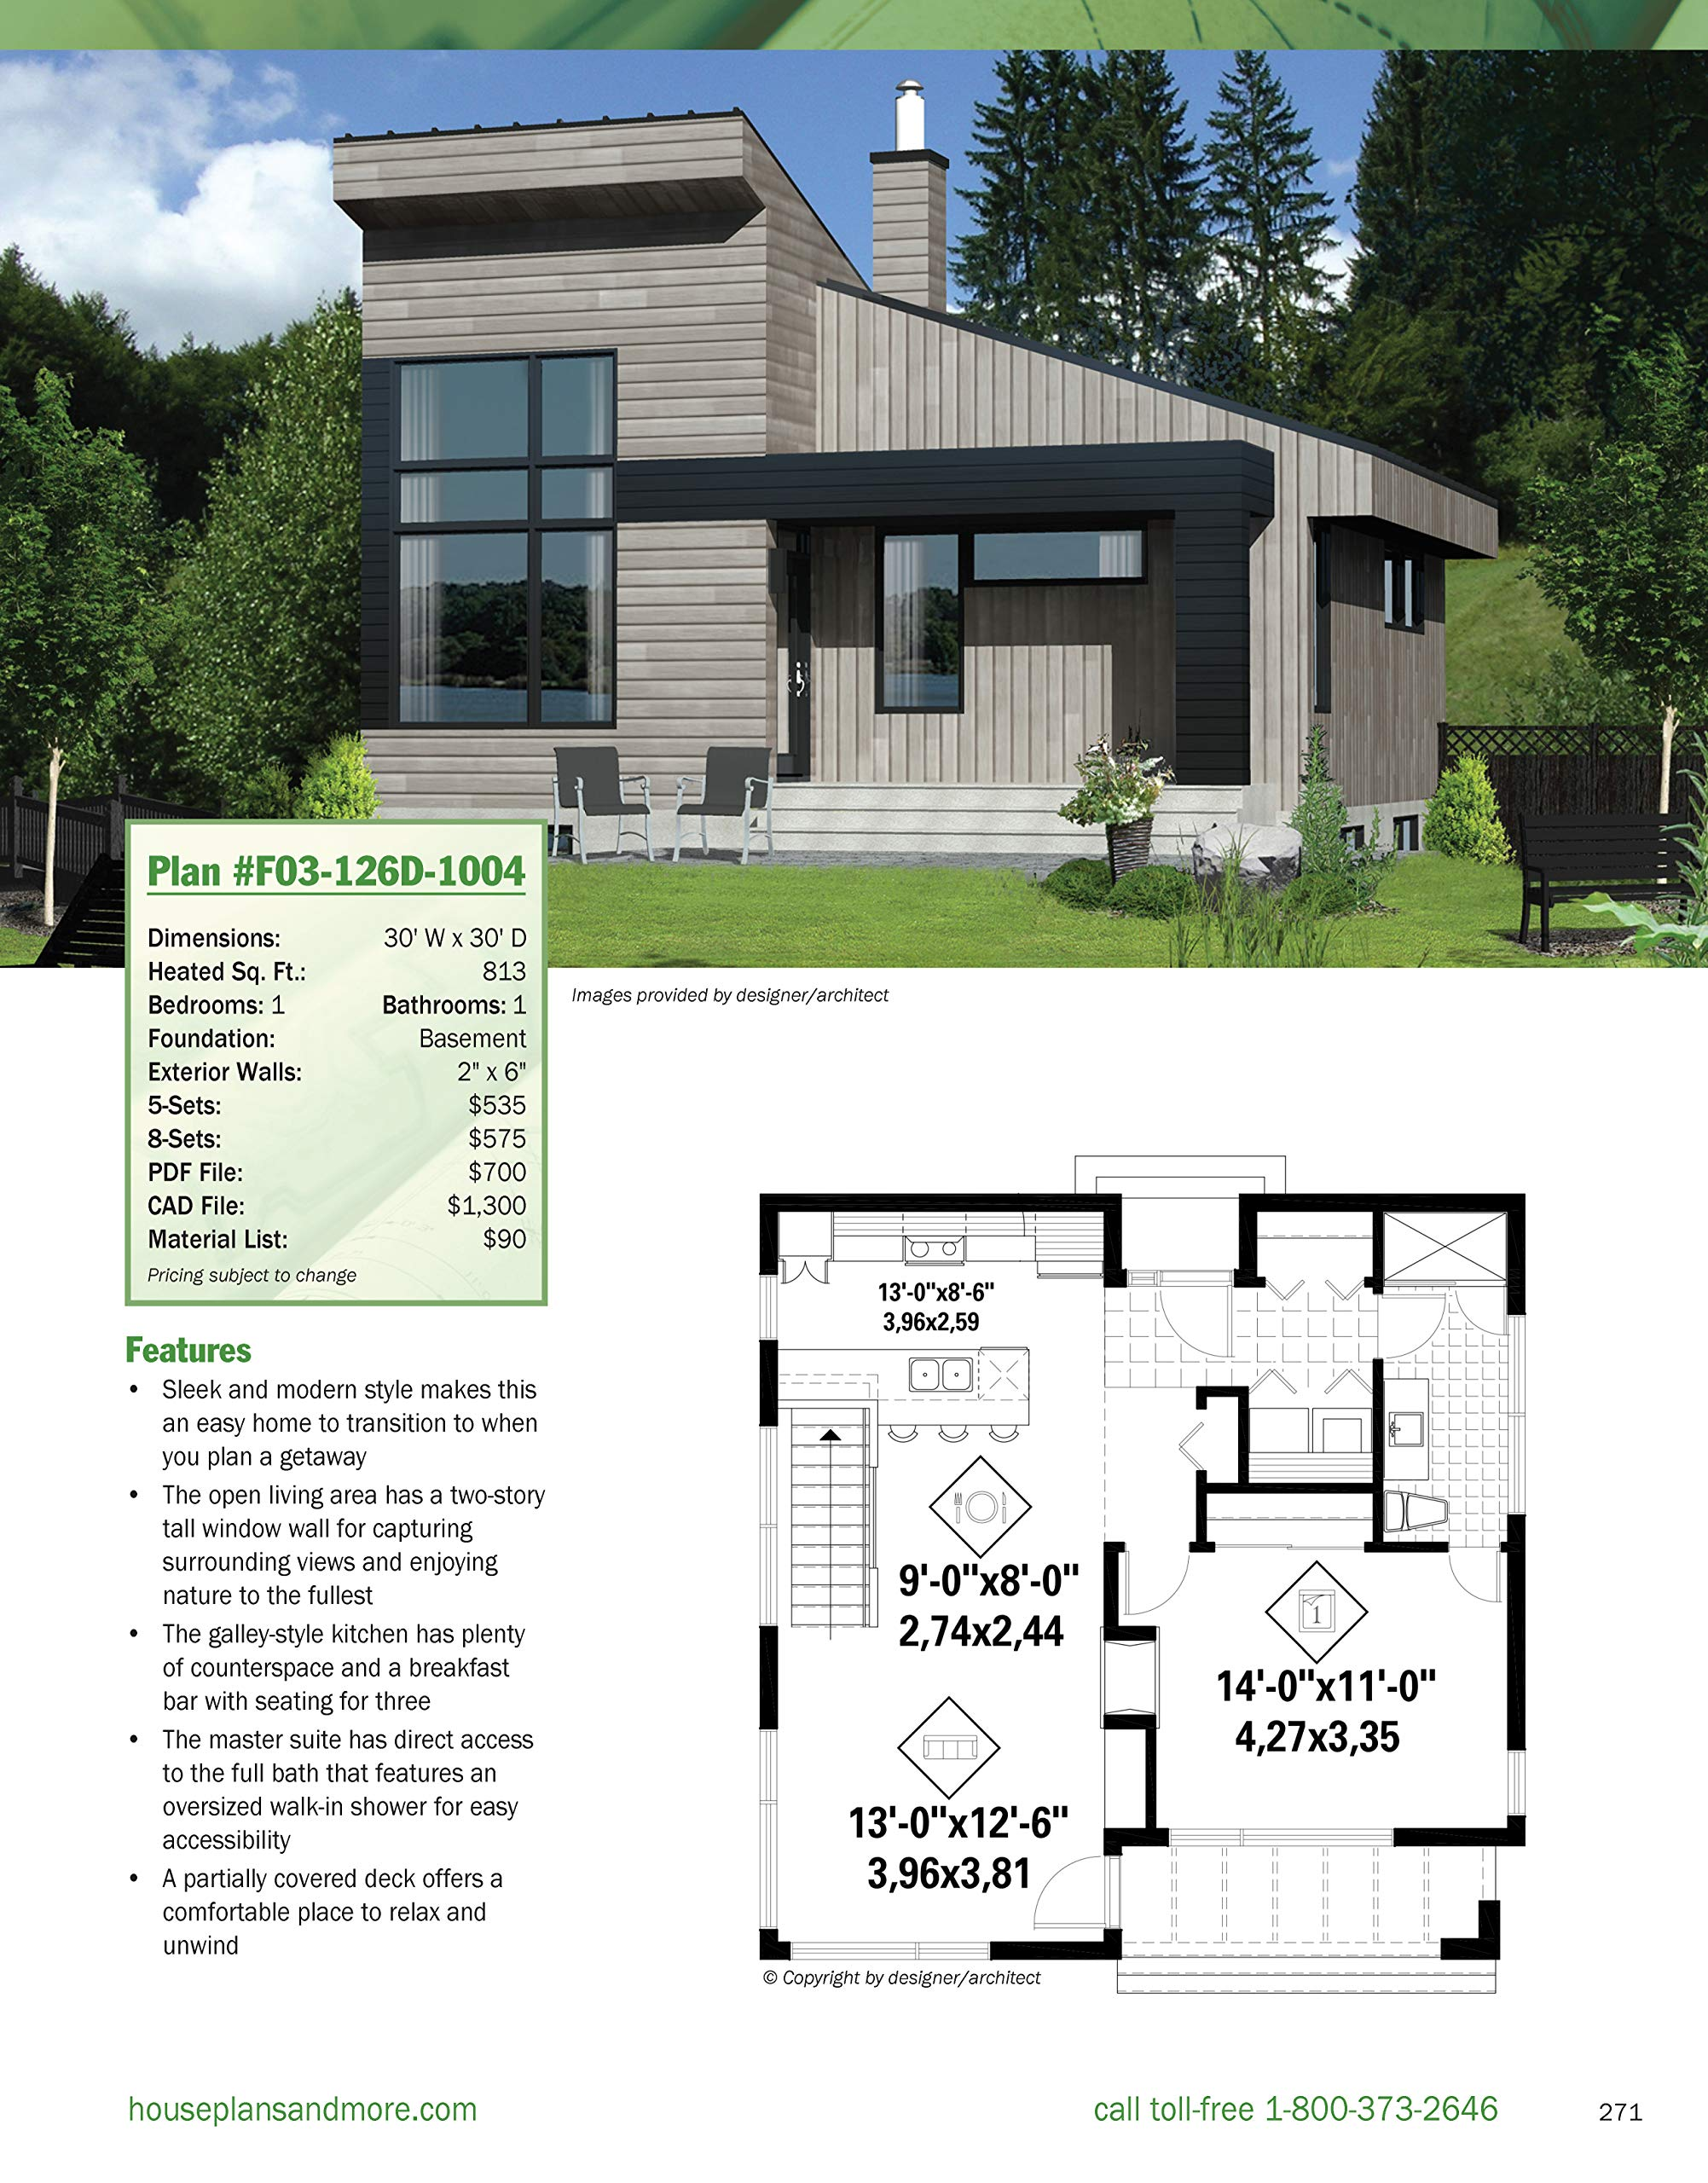 The Big Book Of Small Home Plans Over 360 Home Plans Under 1200 Square Feet Creative Homeowner Cabins Cottages Tiny Houses Plus How To Maximize Your Living Space With Organization,Hidden Toy Storage In Living Room